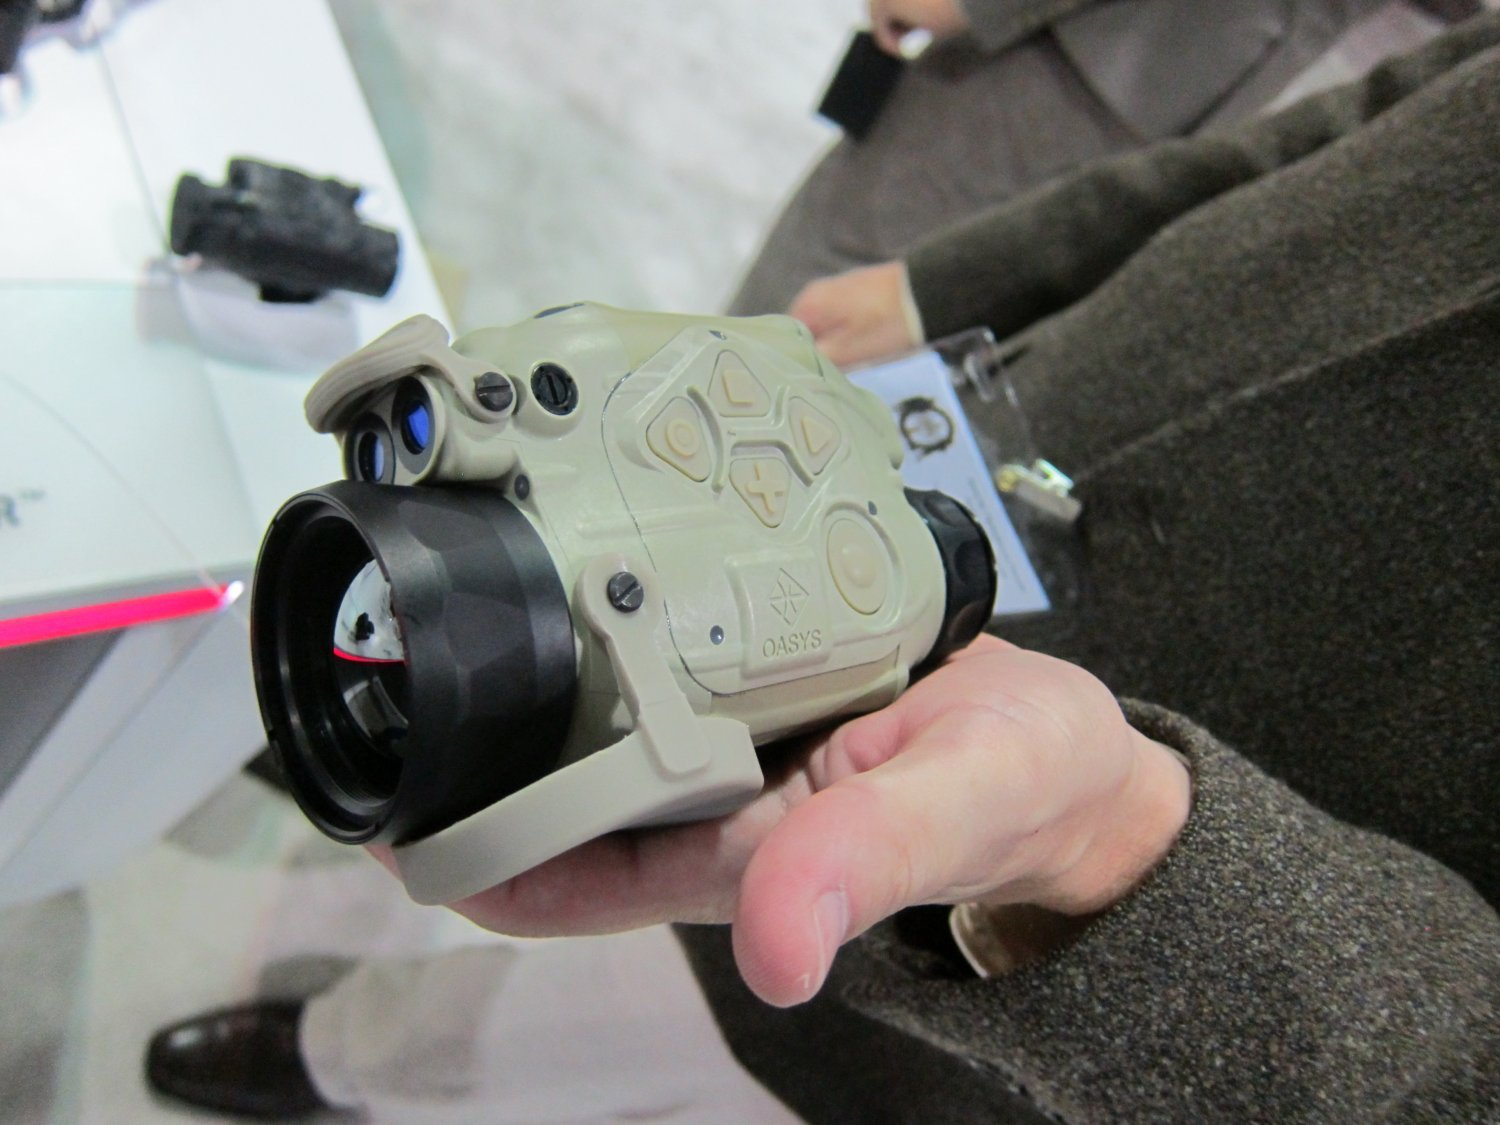 BAE_Systems_Infantry_Warfighter_Warrior_Thermal-IR_(Infrared)_Weapons_Sights_and_HMD_Optics_SOFIC_2011_DefenseReview_(DR)_11